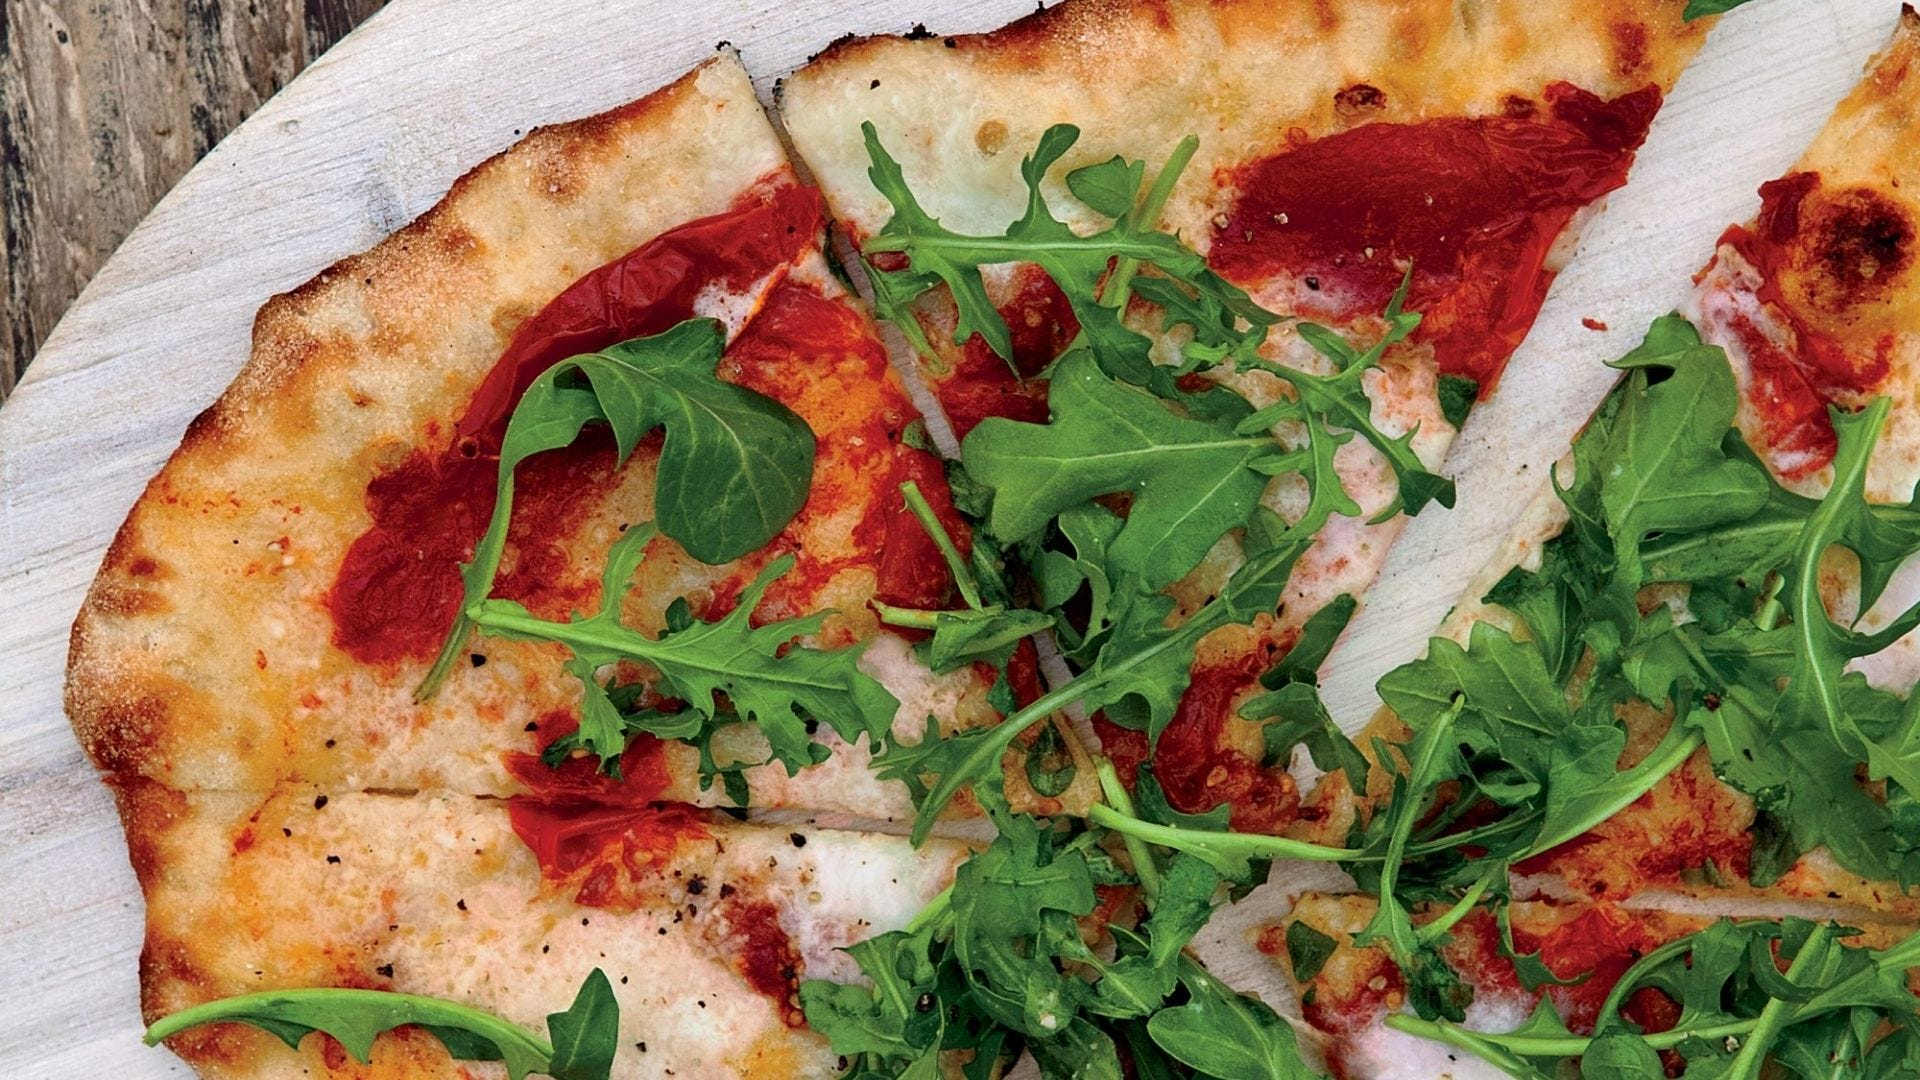 A pizza with tomato sauce and arugula.